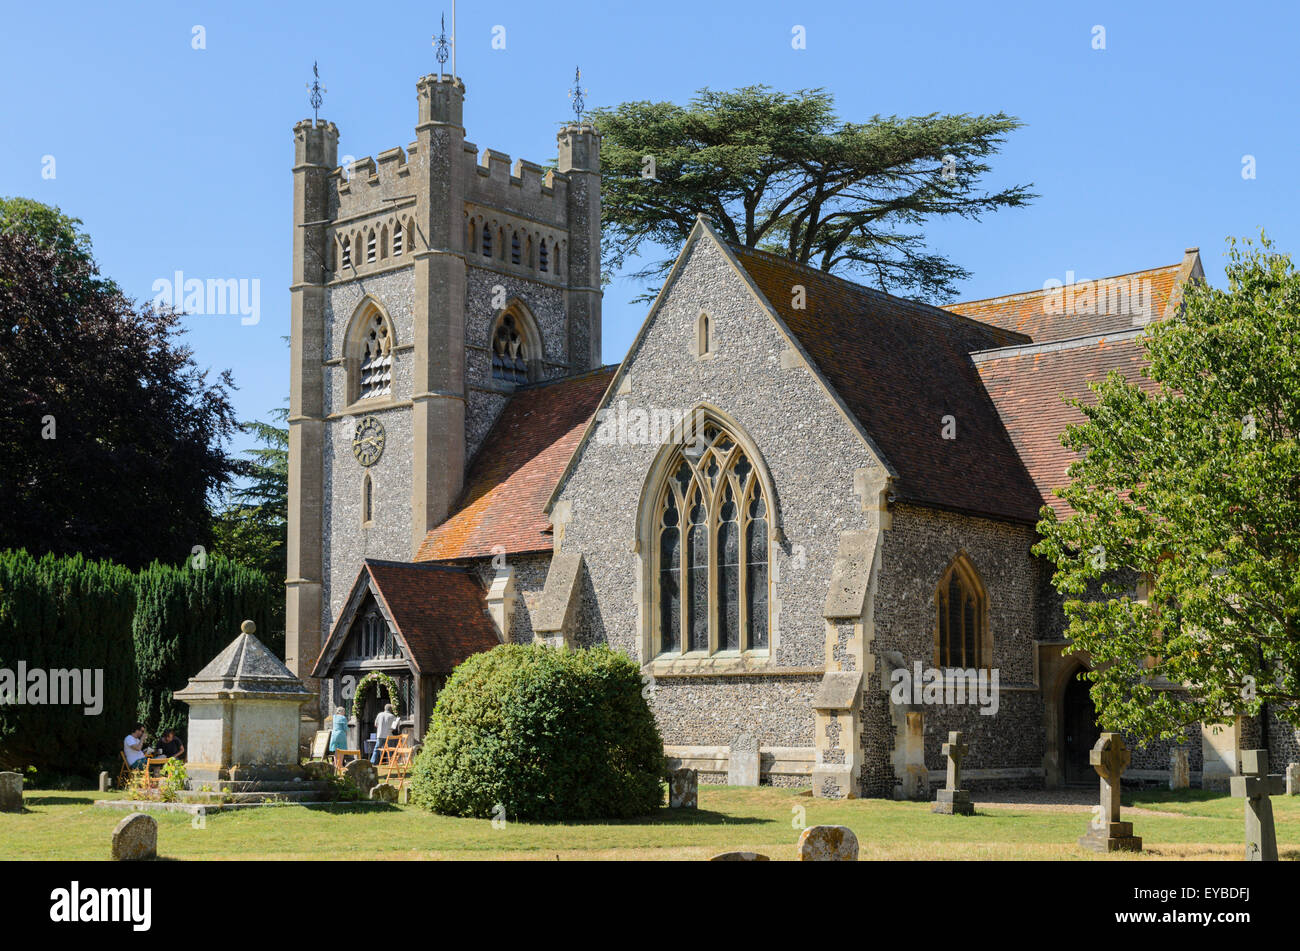 St Mary the Virgin Church, Hambleden, Buckinghamshire, England, UK. - Stock Image